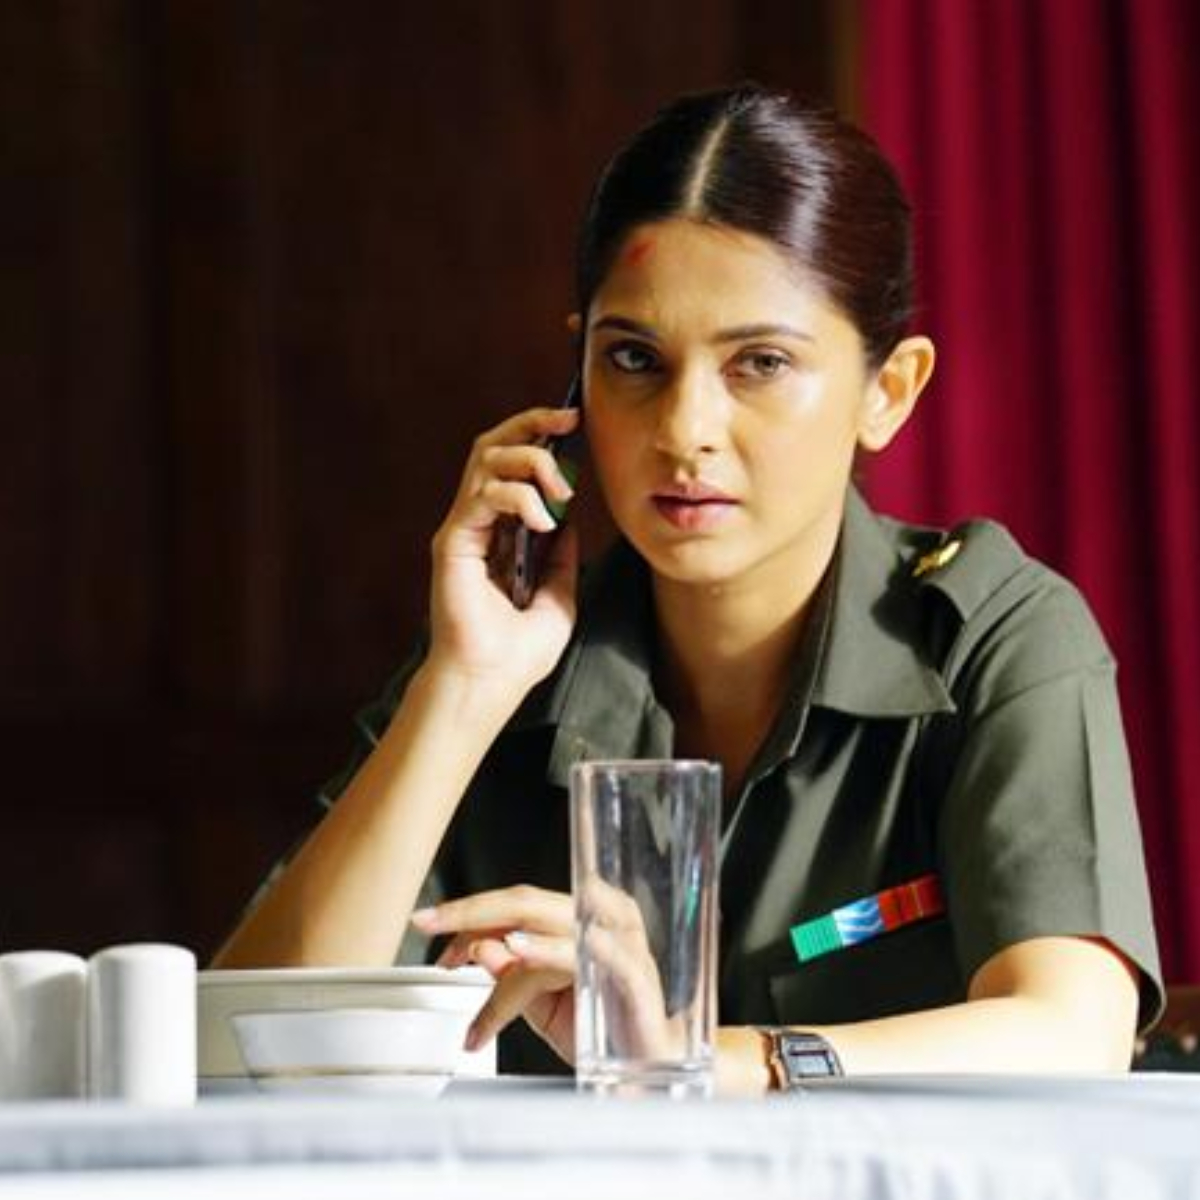 https://www.pinkvilla.com/files/beyhadh_2_actress_jennifer_winget_dons_a_fauji_look_in_code_m_as_she_tries_to_expose_a_ugly_secret_watch.jpg